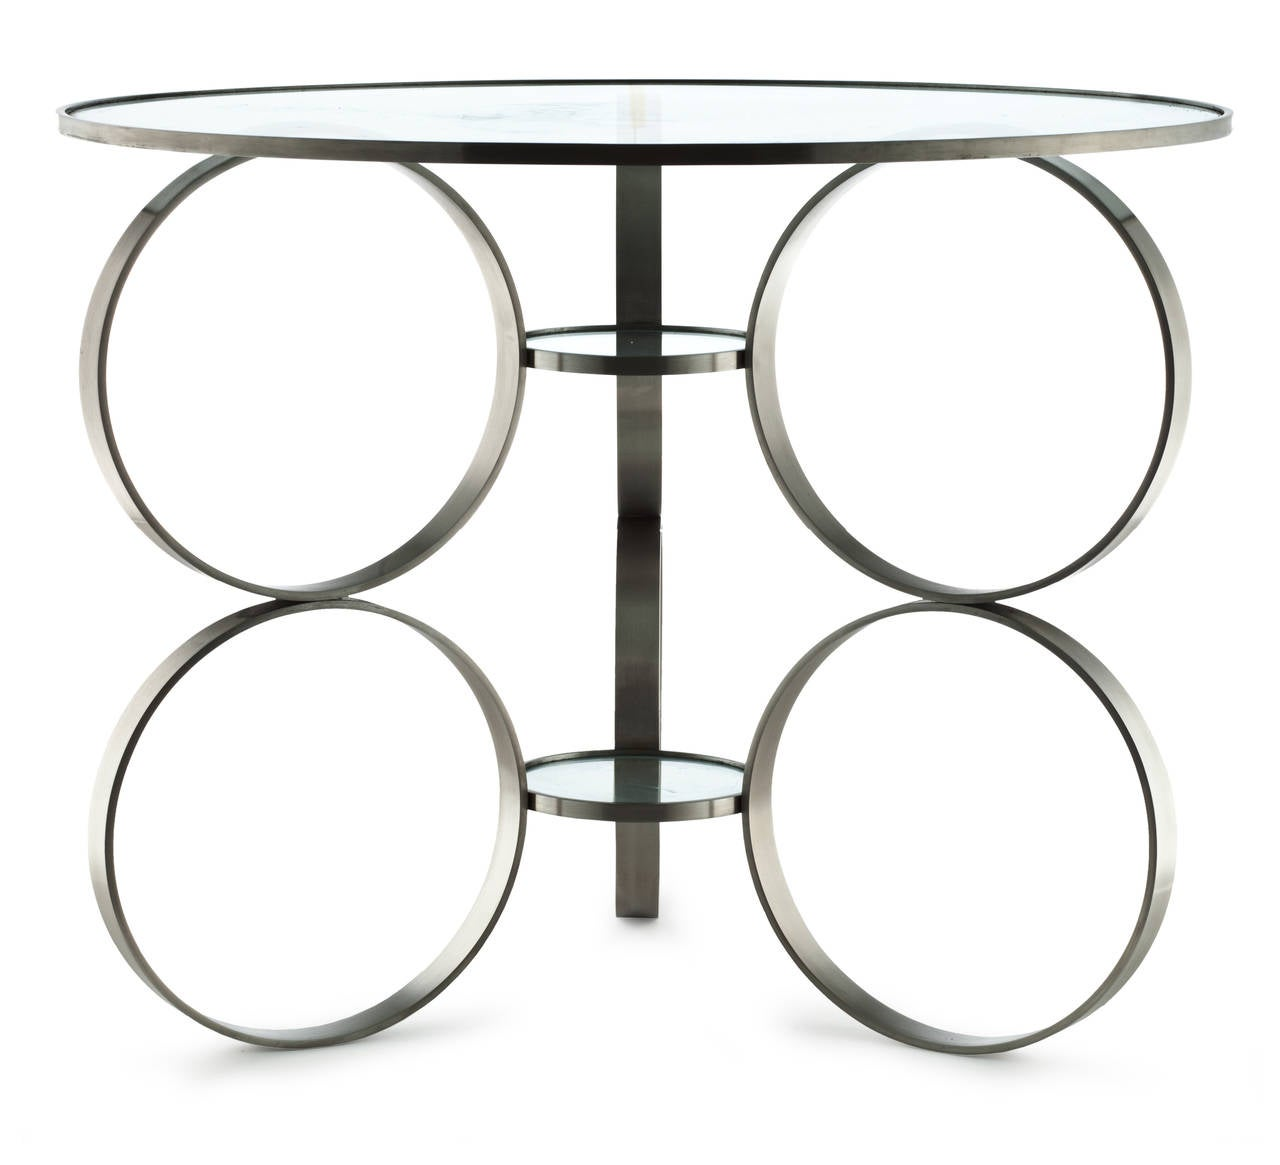 This elegant table is composed of nine rings of steel organized in perfect proportion. Tempered glass is in the tabletop and the two smaller rings. Originally designed in 2006.  Made-to-order in New York City. Require a 50% deposit and then